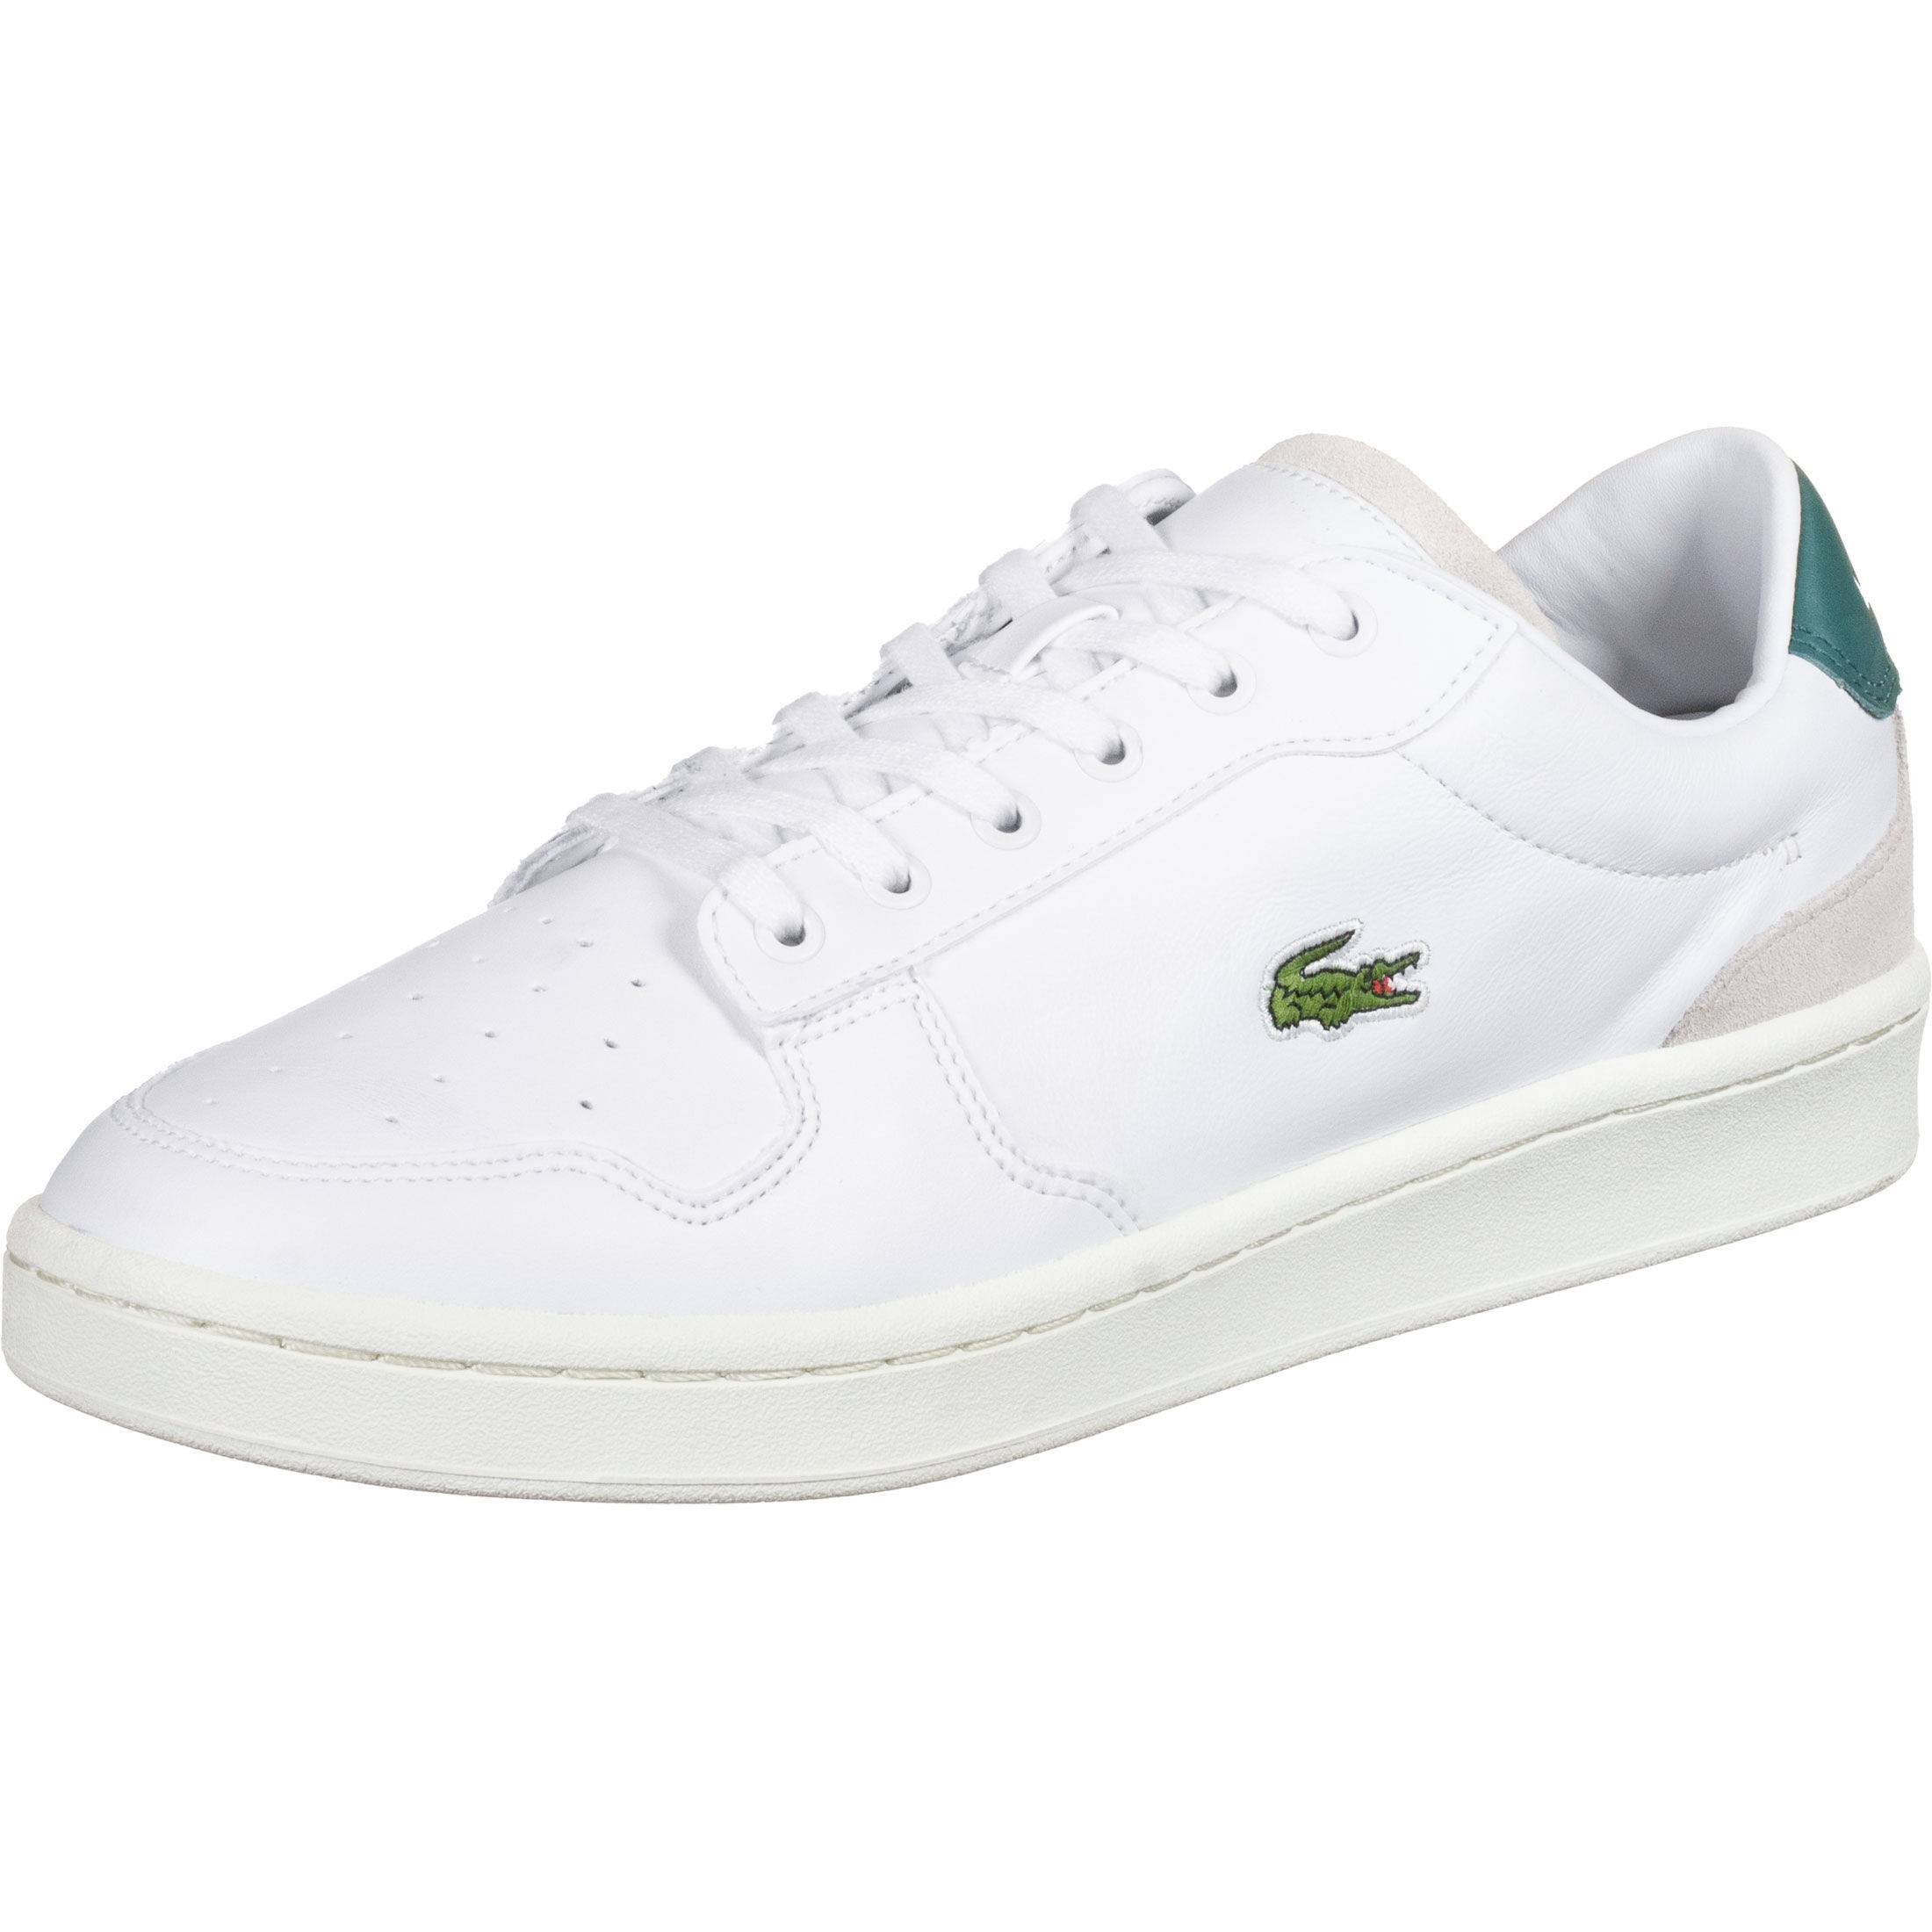 Lacoste Masters Cup, 44.5 EU, homme, blanc